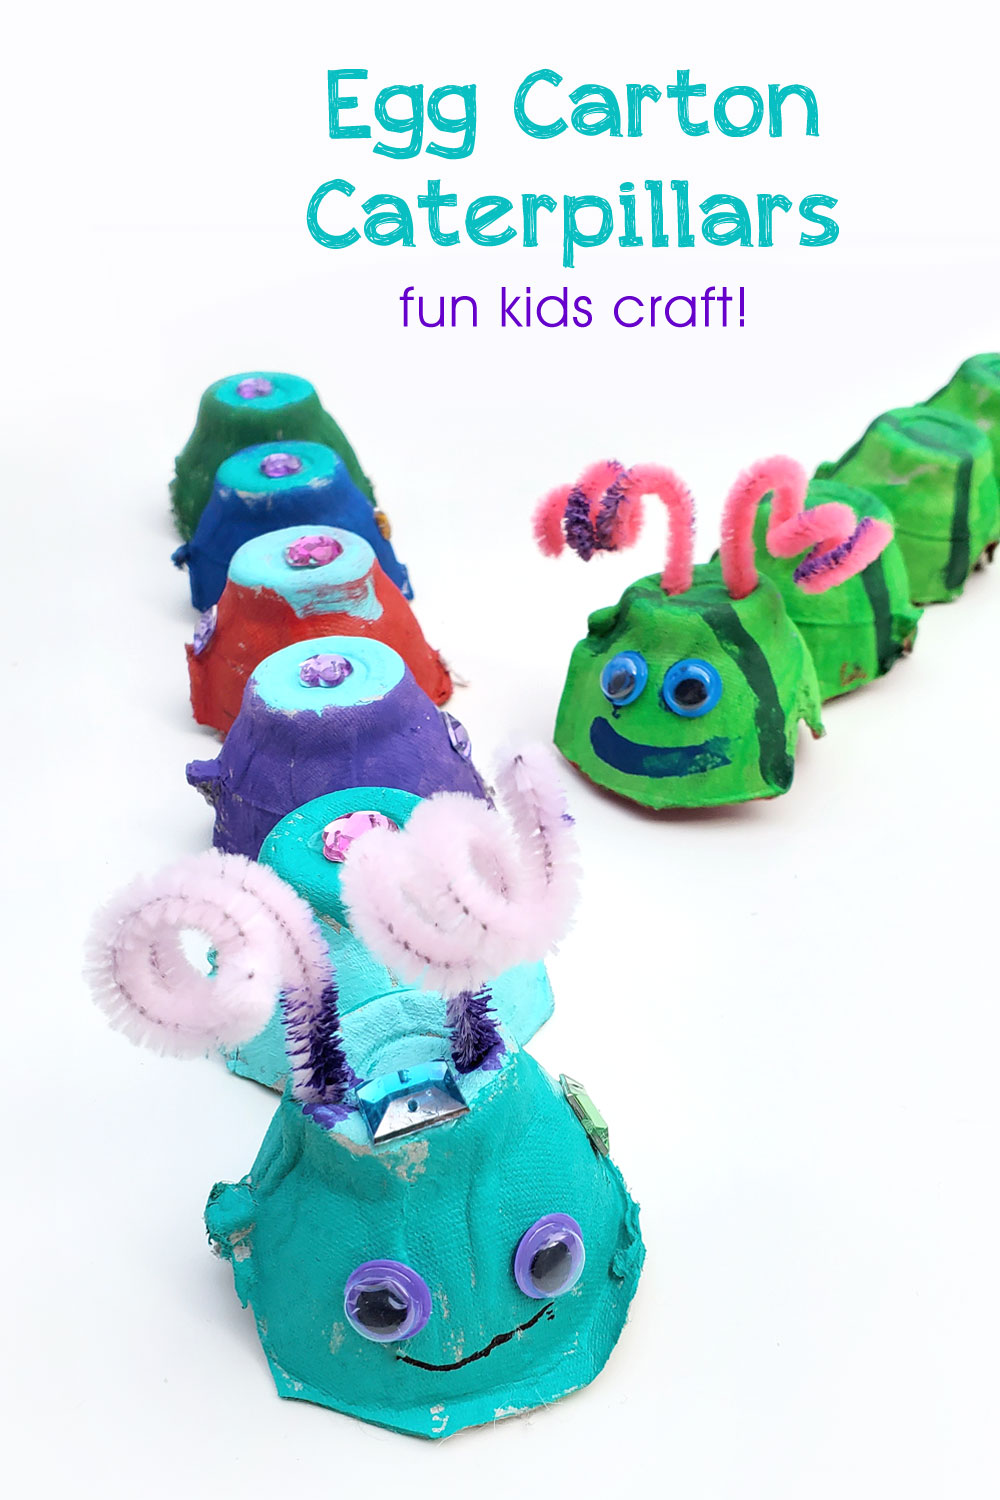 Egg carton caterpillars creative kids craft